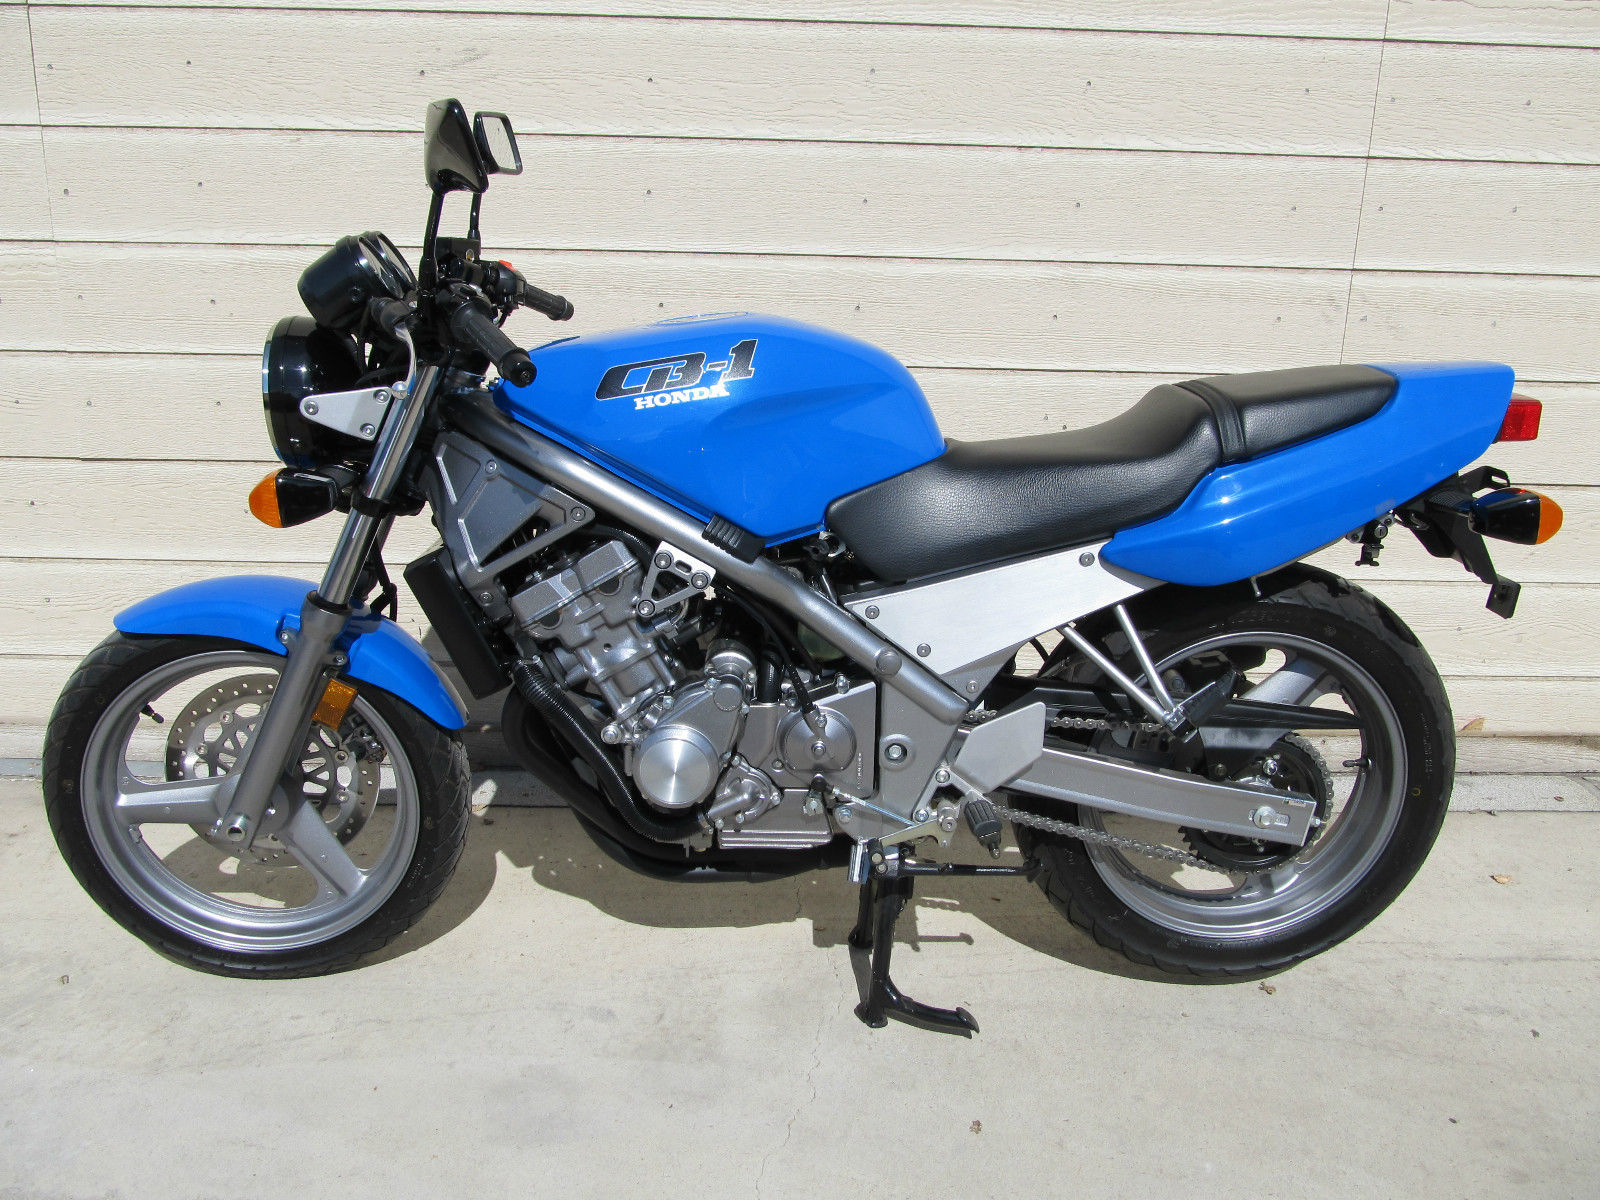 HONDA CB 1 Motorcycles For Sale - Find New or Used HONDA Motorcycles on weeny.tk